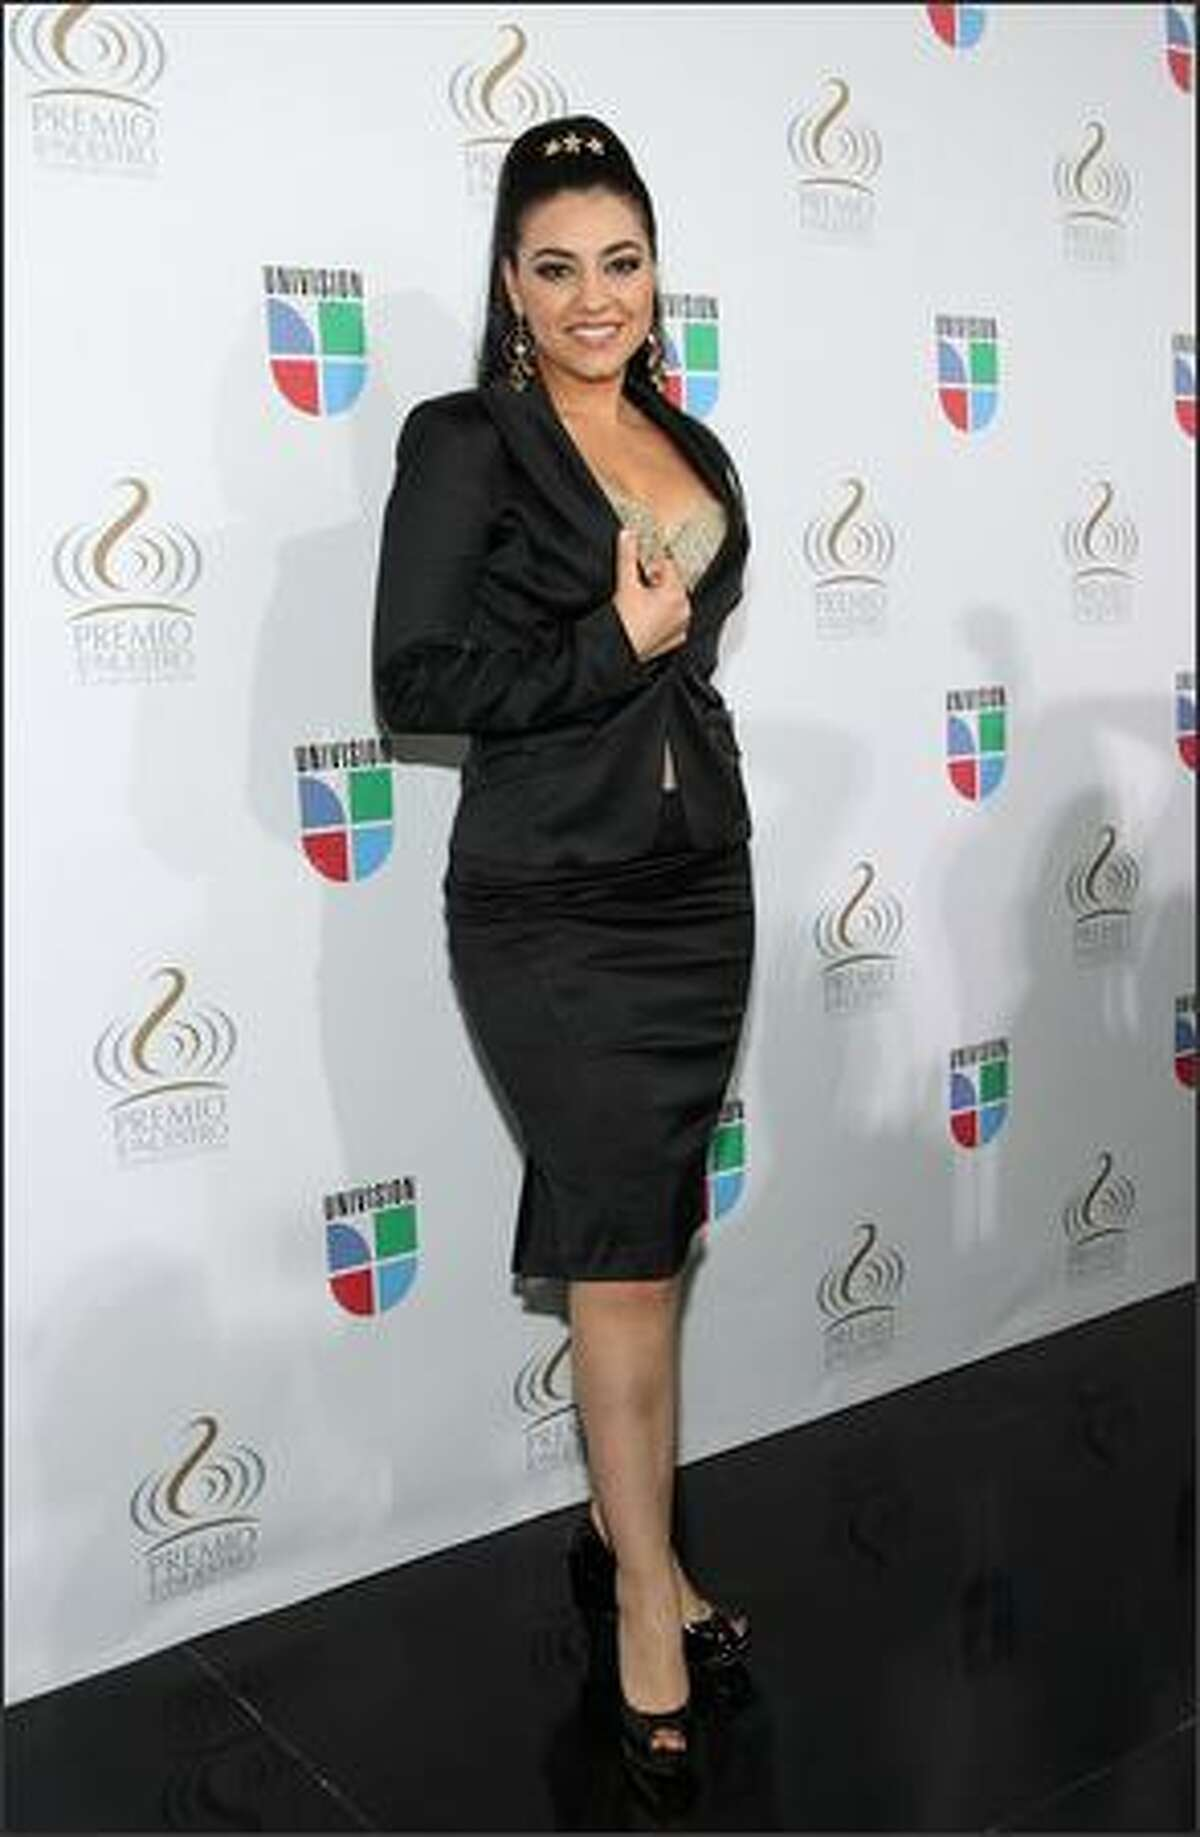 Recording artist Graciela Beltran poses at Bongos Cuban Cafe during a press conference to announce the nominees for the 2008 Premio lo Nuestro a la Musica Latina awards show at the Bongos Cuban Cafe on December 12, 2007 in Miami, Florida.